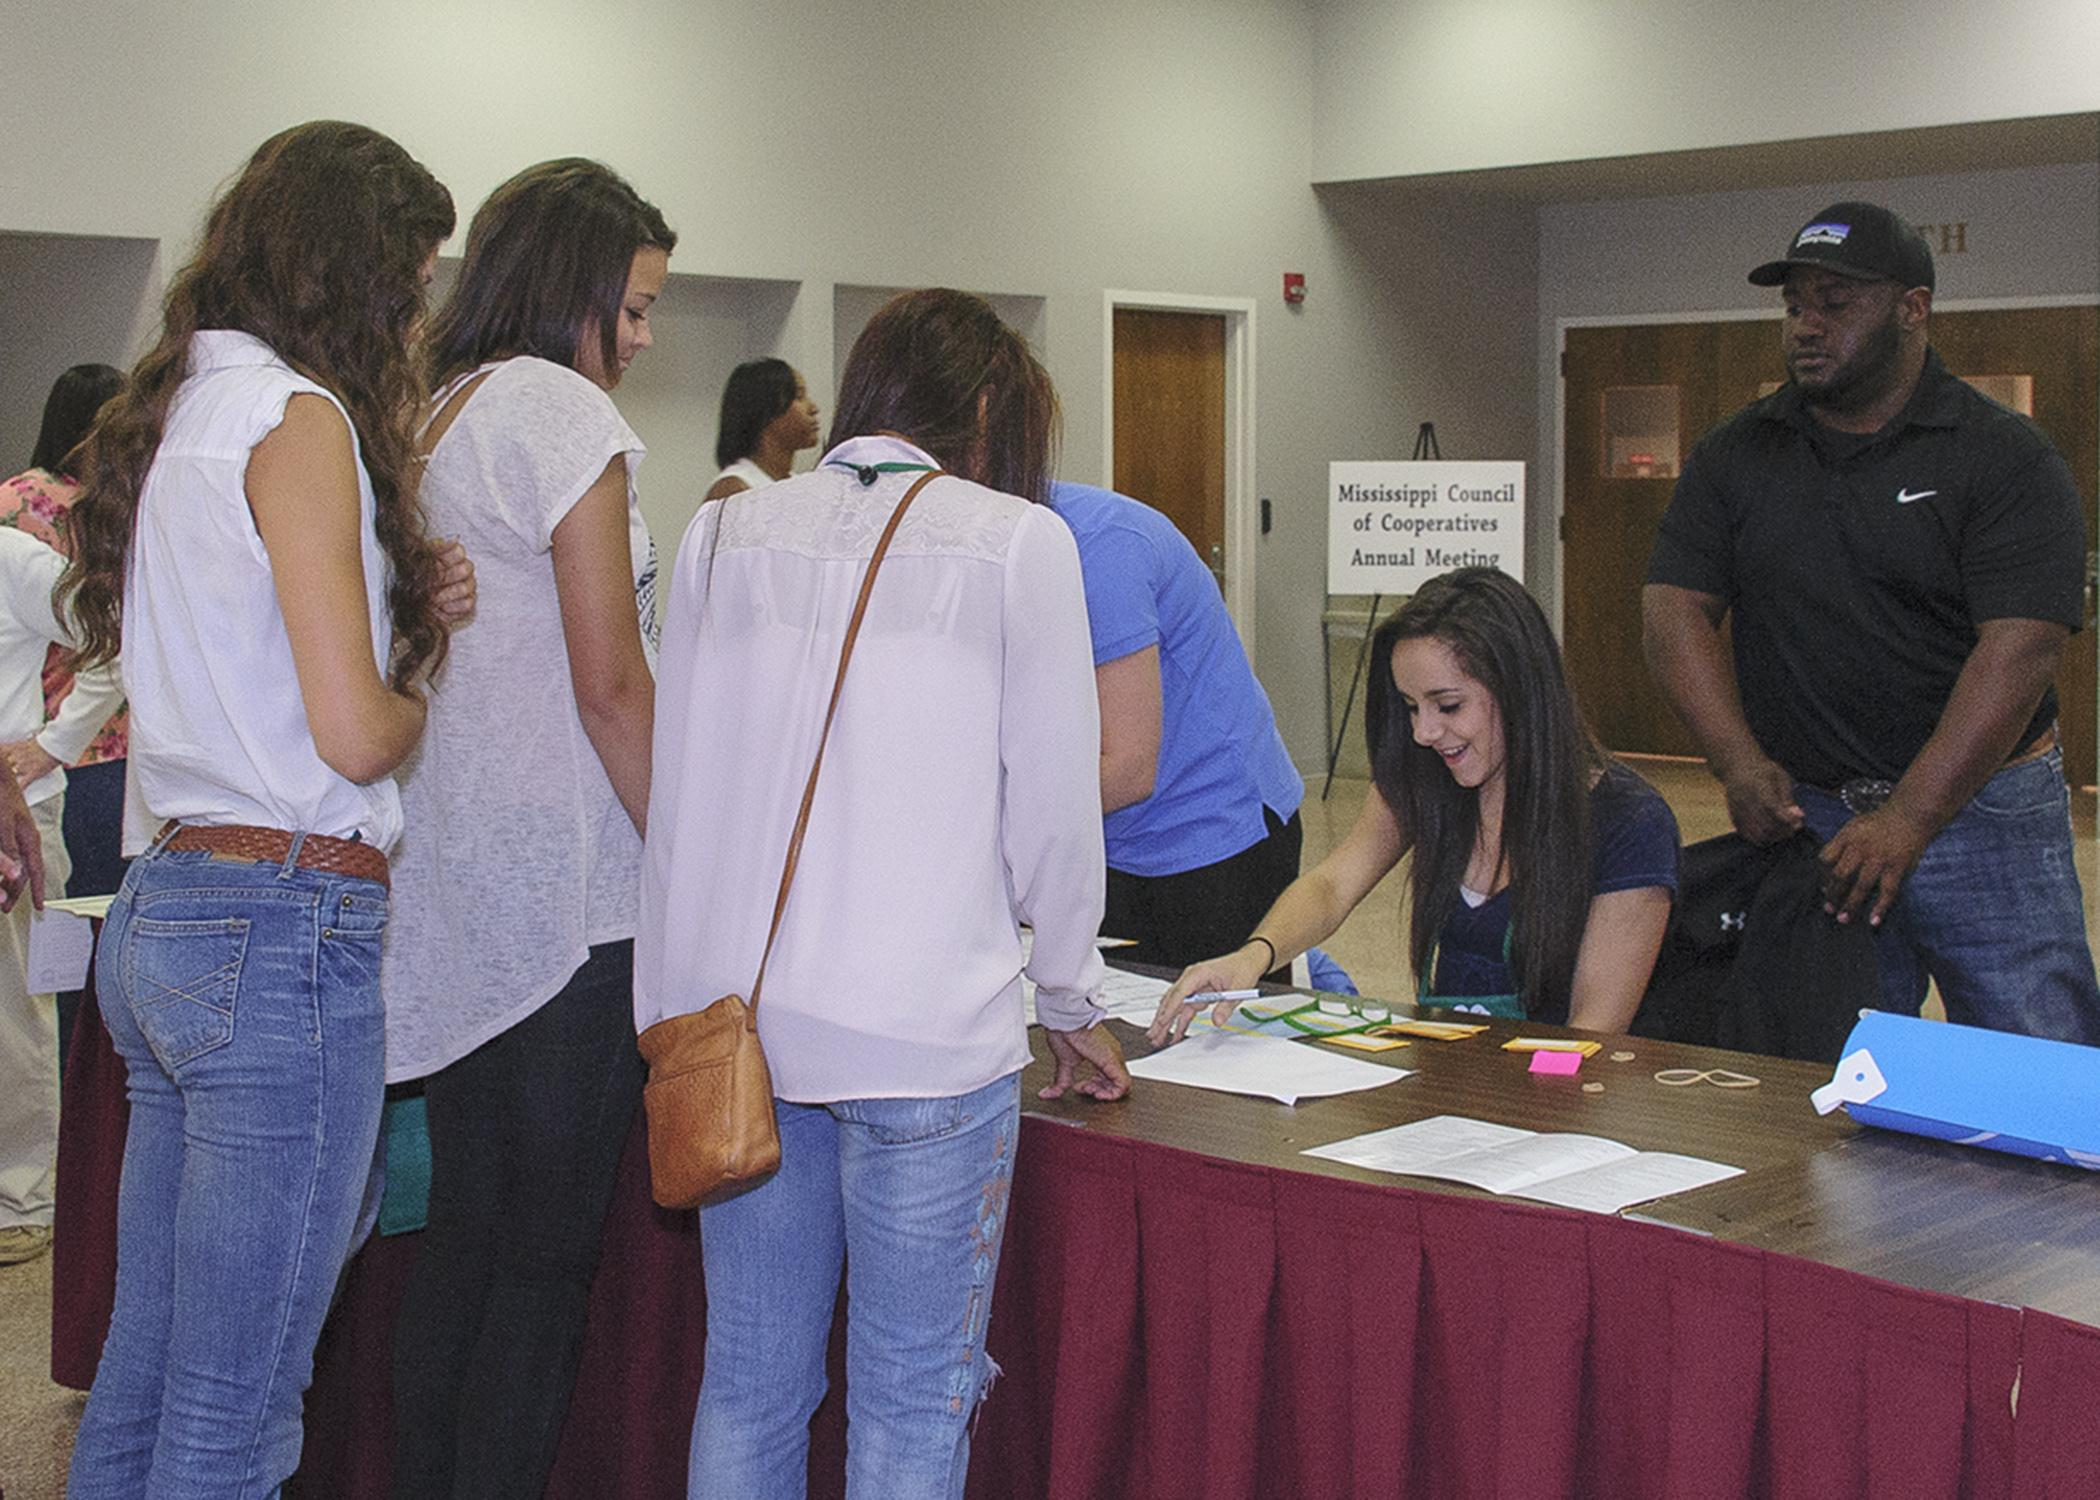 Mississippi 4-H members gathered at Mississippi State University Tuesday, July 15, 2014, for the four-day workshop and tour to learn about business cooperatives and state government. Marella Failla of Hancock County, the state 4-H Council president, helped with registration. (Photo by MSU Ag Communications/Kevin Hudson)